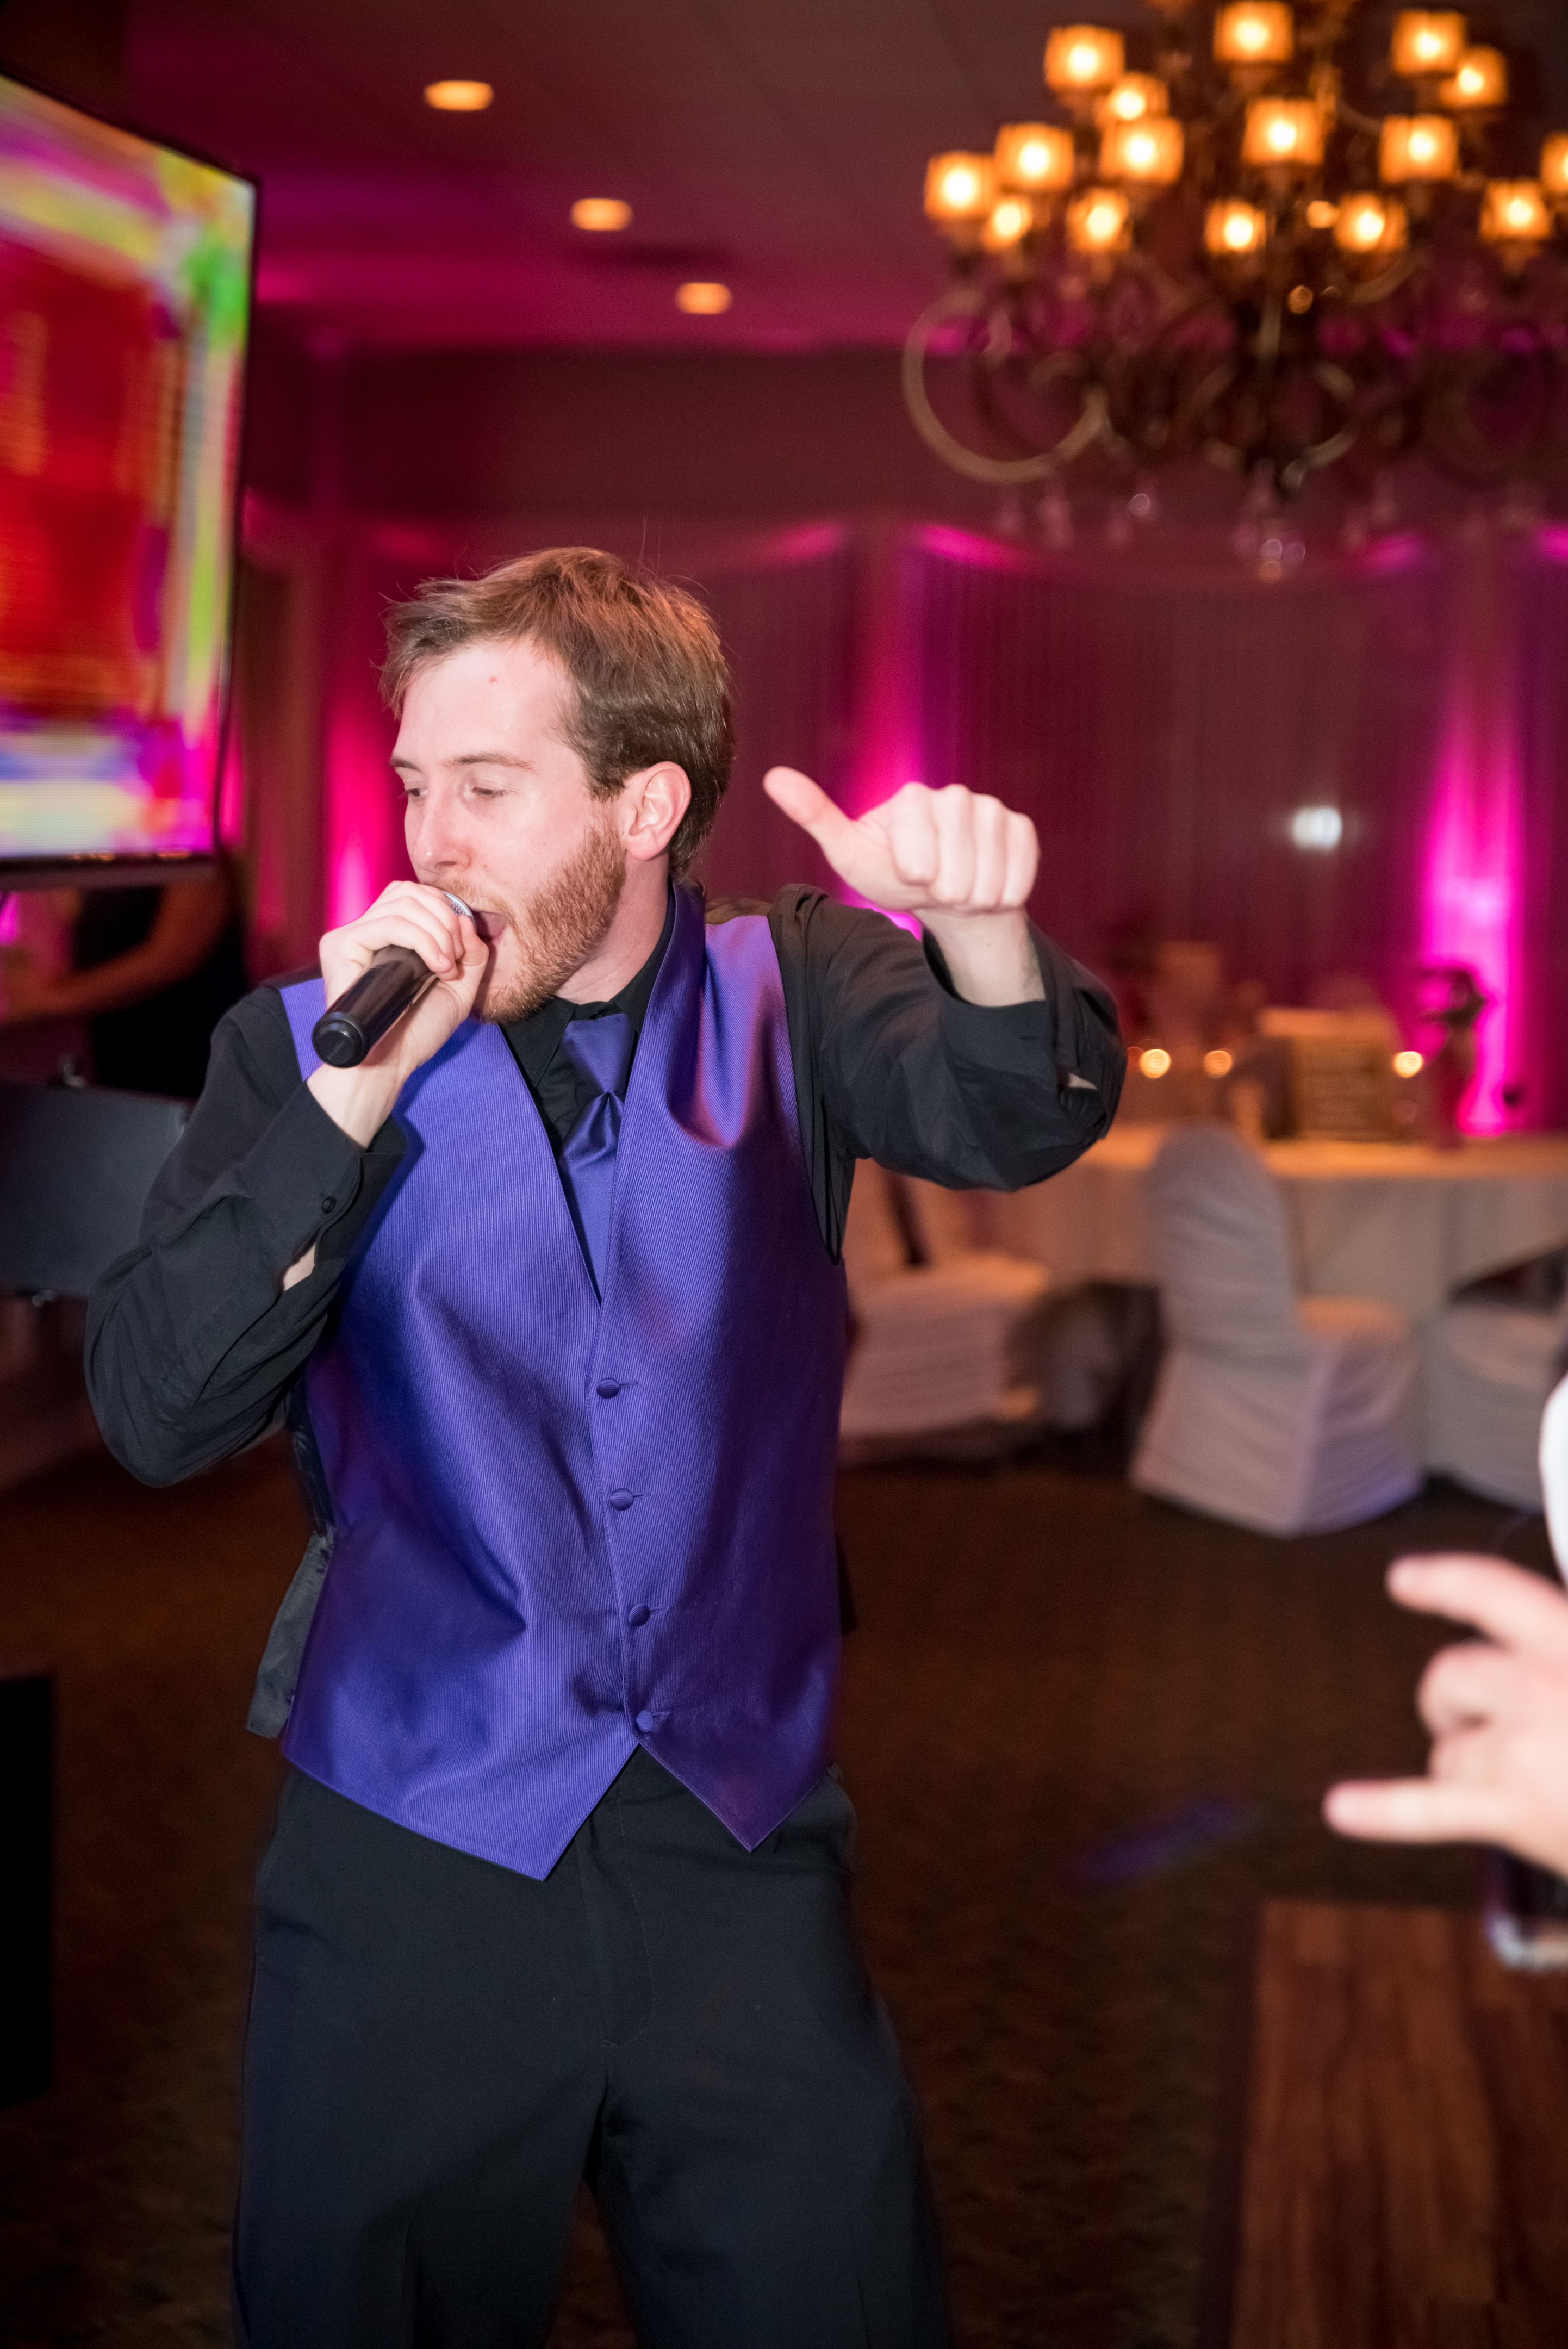 7 Ways To Have The Perfect Reception